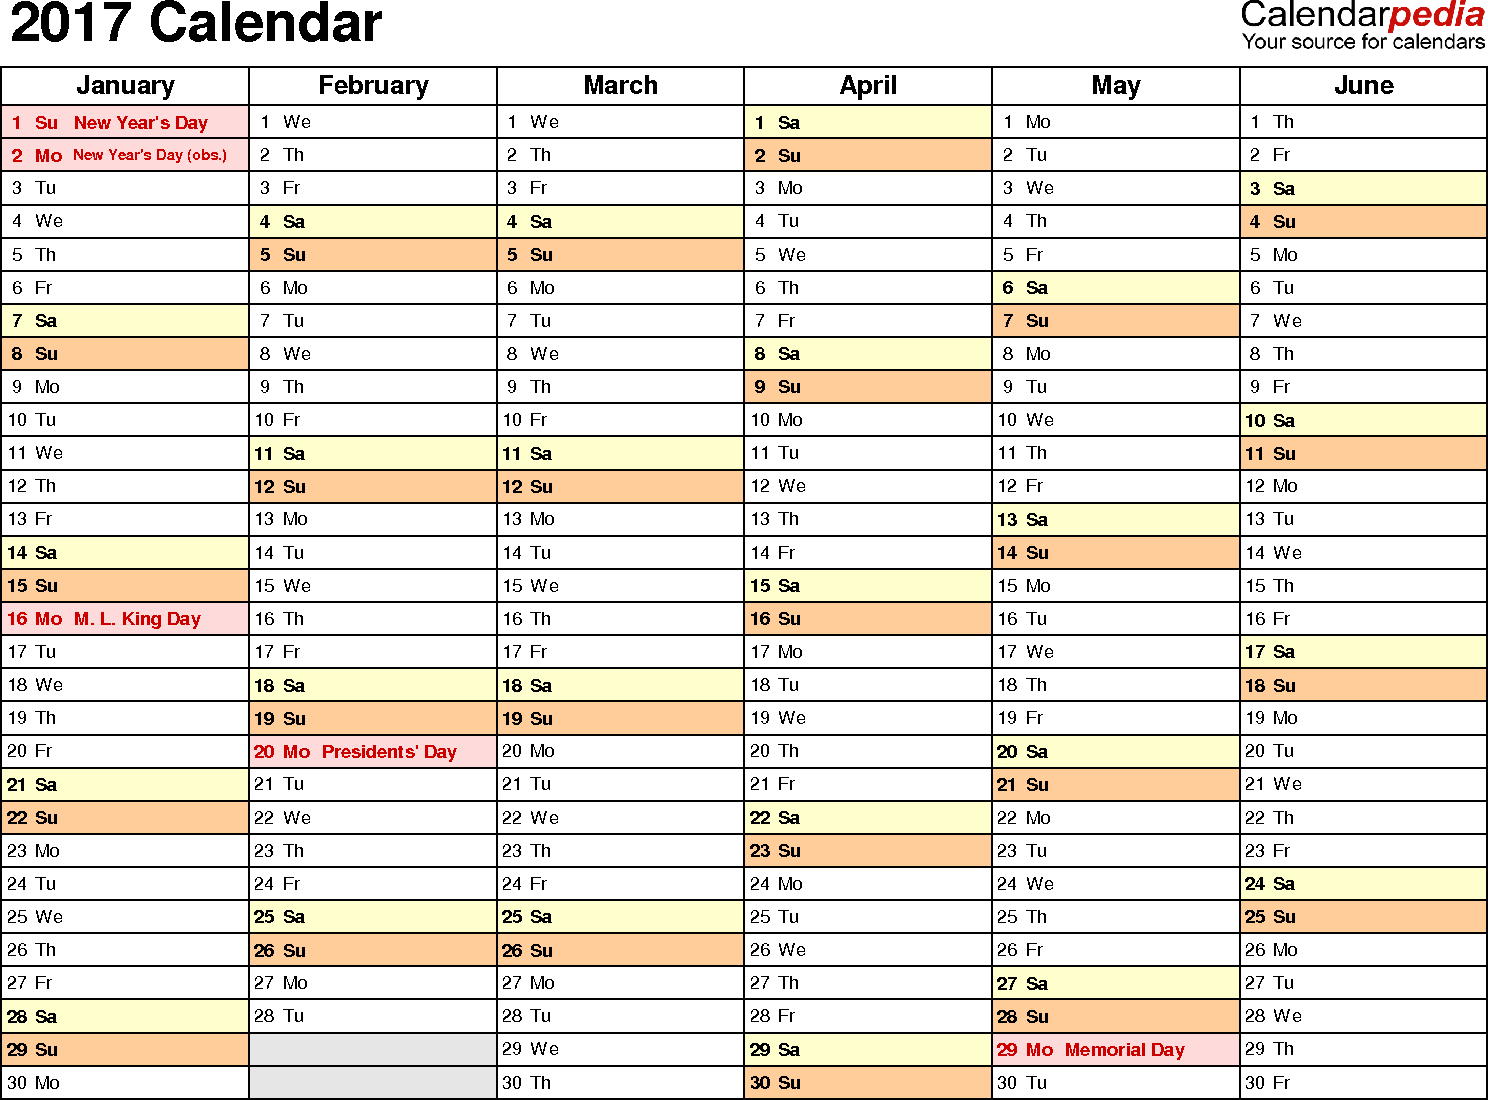 Ediblewildsus  Nice  Calendar  Download  Free Printable Excel Templates Xls With Engaging Template   Calendar For Excel Months Horizontally  Pages Landscape Orientation With Amusing How Do You Enable Macros In Excel Also How To Compare Two Lists In Excel In Addition F Test Excel And Insinkerator Evolution Excel  Hp As Well As Slicers Excel Additionally Excel Remove Password From Calendarpediacom With Ediblewildsus  Engaging  Calendar  Download  Free Printable Excel Templates Xls With Amusing Template   Calendar For Excel Months Horizontally  Pages Landscape Orientation And Nice How Do You Enable Macros In Excel Also How To Compare Two Lists In Excel In Addition F Test Excel From Calendarpediacom